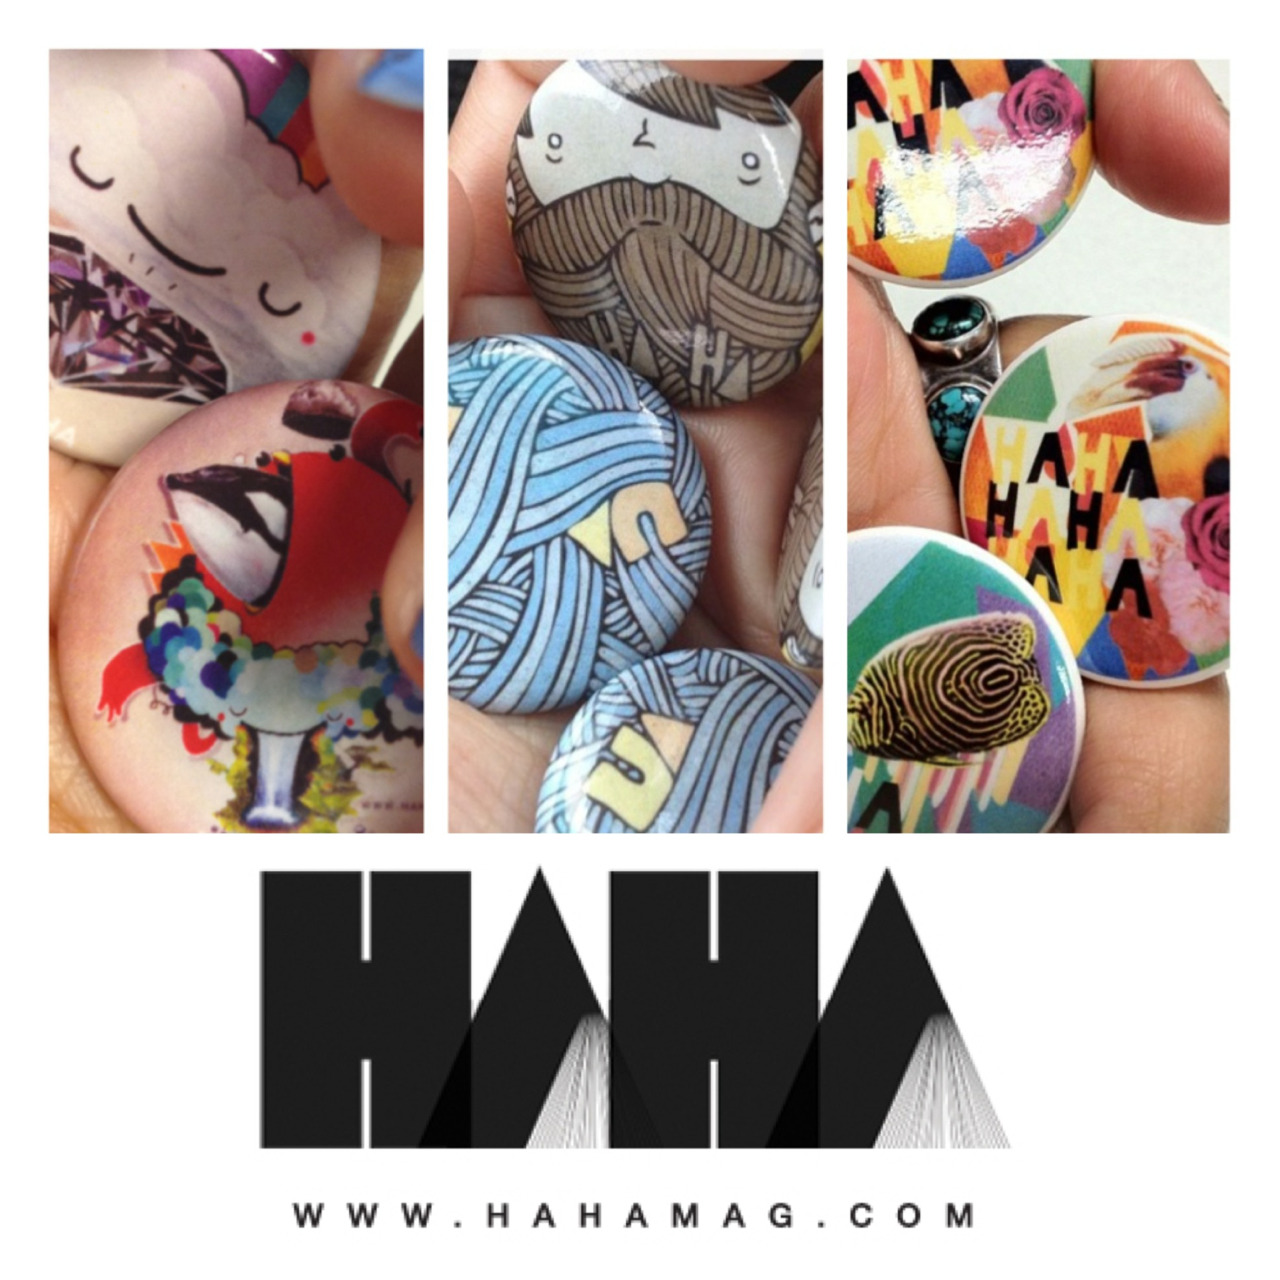 "IT'S ALMOST TIME TO SAY GOODBYE… to our Artist Series Editions Pins. It's been a blast working with artists whose work we greatly admire to bring you guys these awesome limited edition HAHA redesigns. But sadly it's almost time to end the series and start planning next year's. With 1 pin left to go we kinda figured, ""Hey why don't we ask our Tumblr fans if they want to design the last pin?!"" Yup, if you download the template here (use the 1.25 round button) and send us your design at global@hahamag.com by July 15th you just might have a chance at $50 USD and seeing your pin go global - into the hands of our subscribers. Just one thing though: you have to incorporate the word HAHA into your design. So get to it already!! And if you missed out on getting one of your faves you can always grab one here."